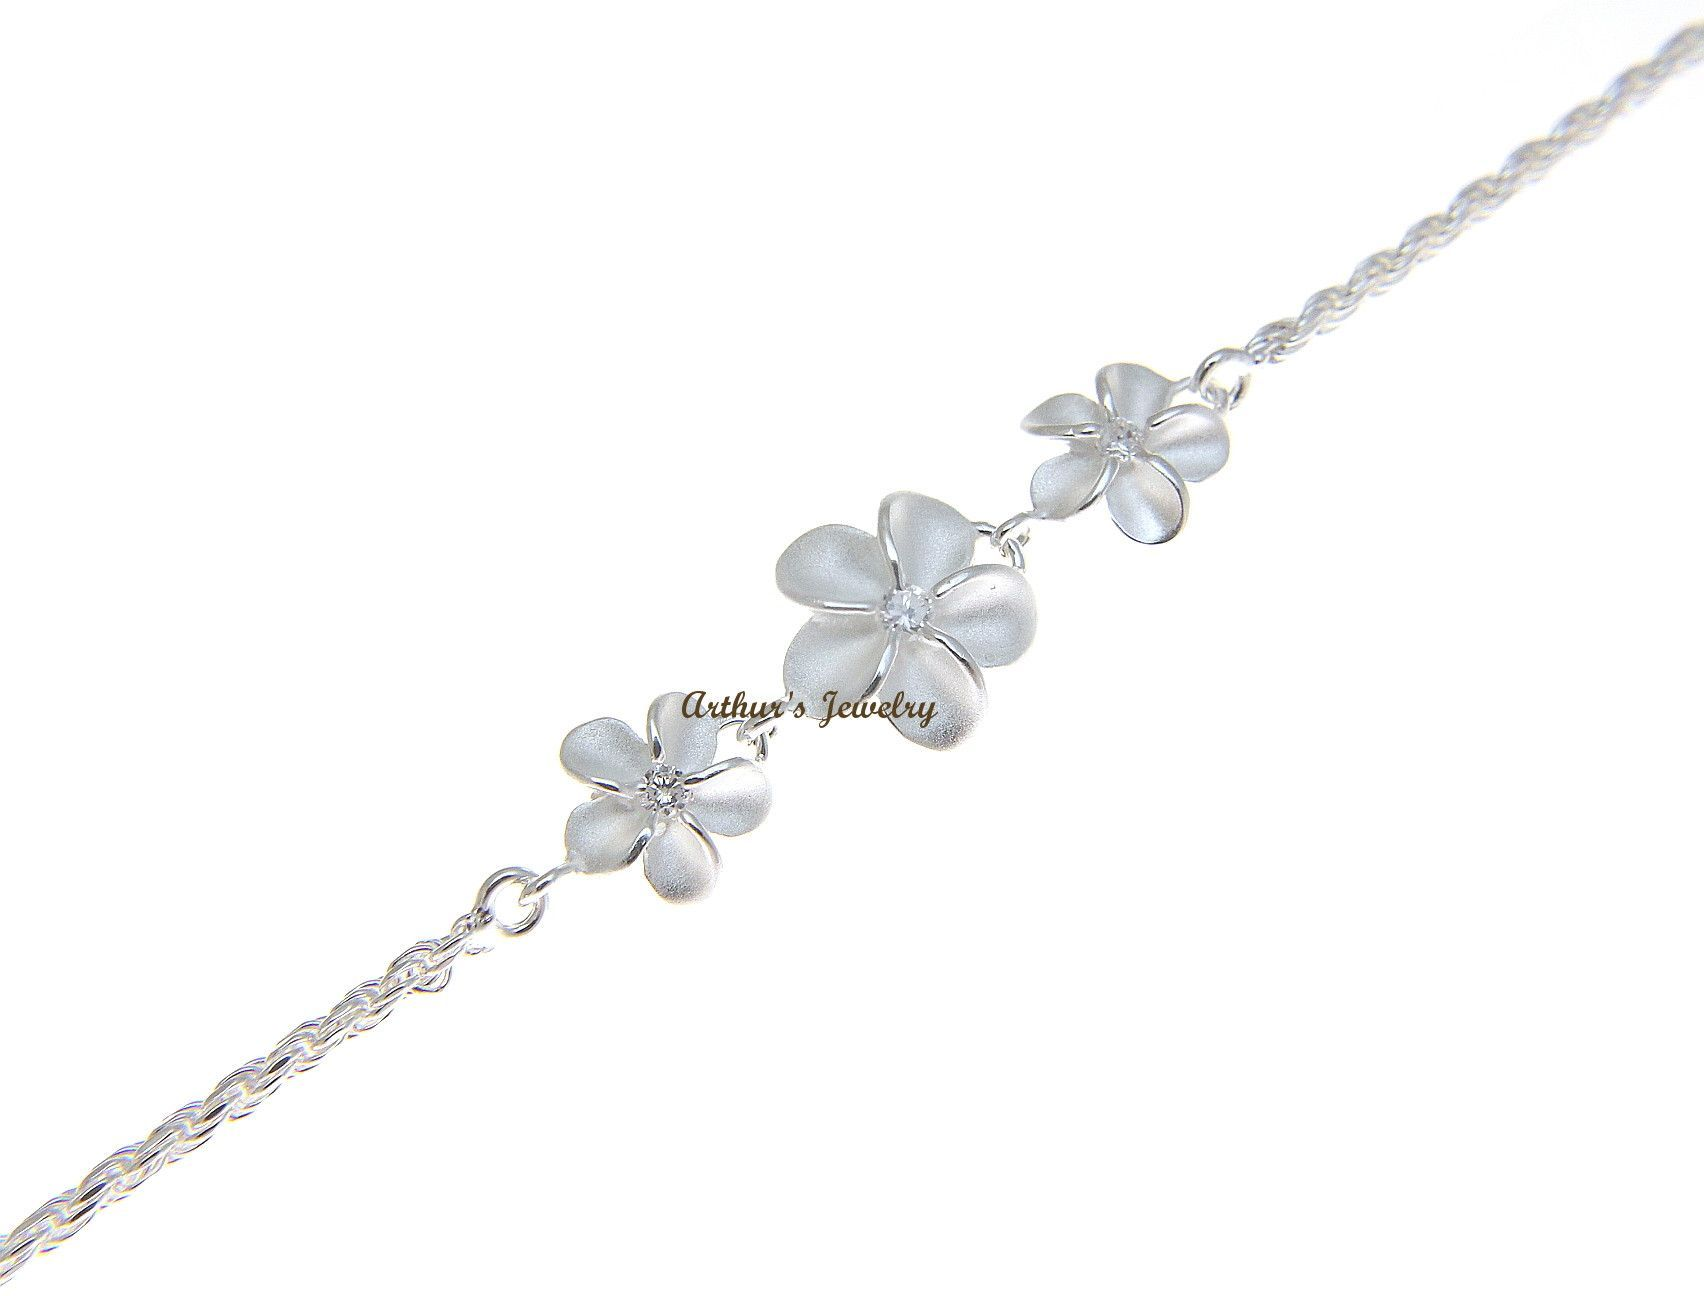 fish cz plumeria ygp chain anklet star foot sterling hawaiian silver